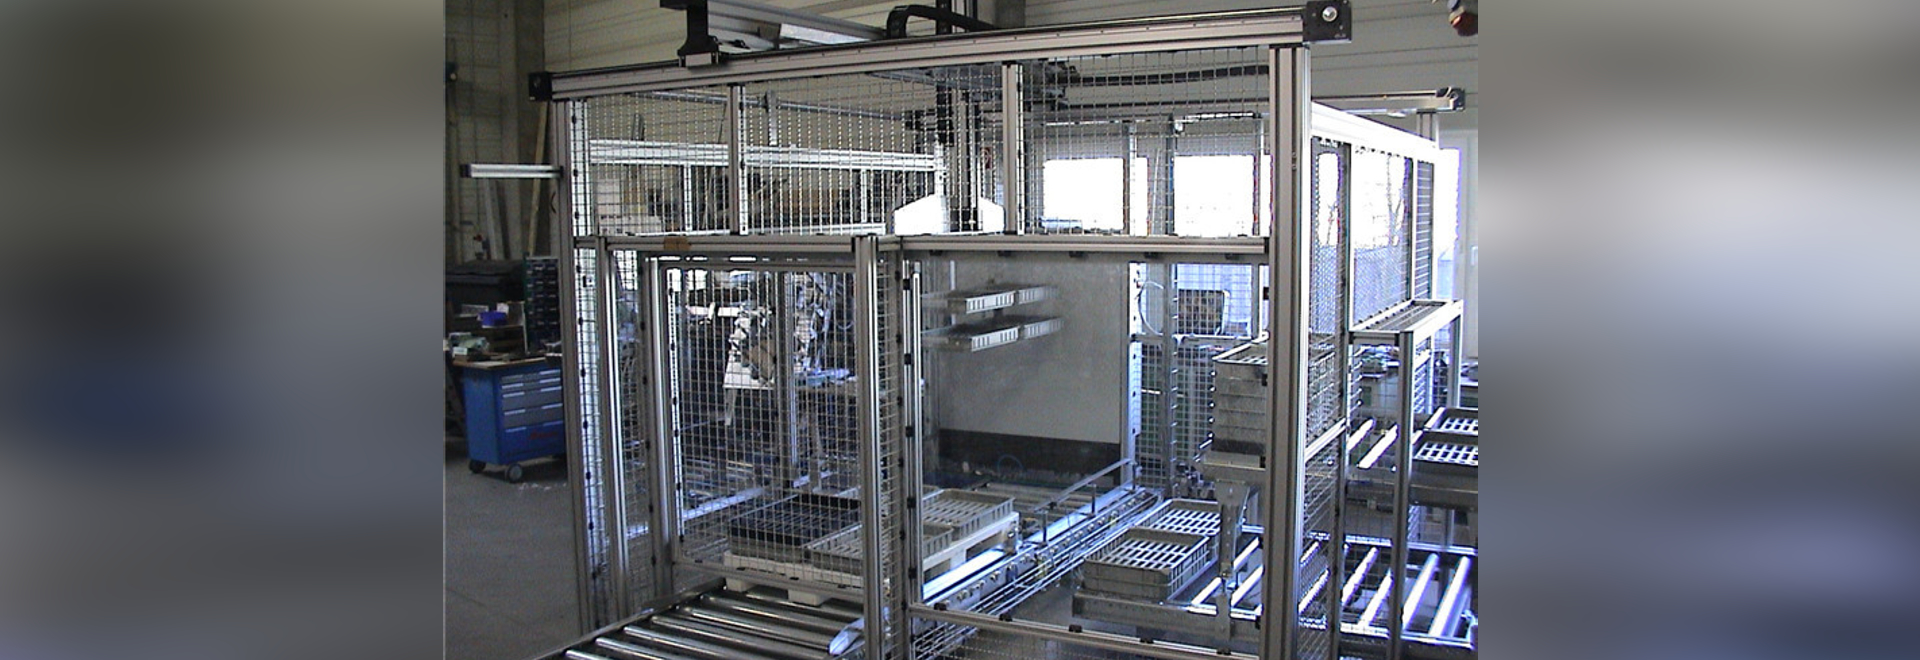 pick and place linear motion system